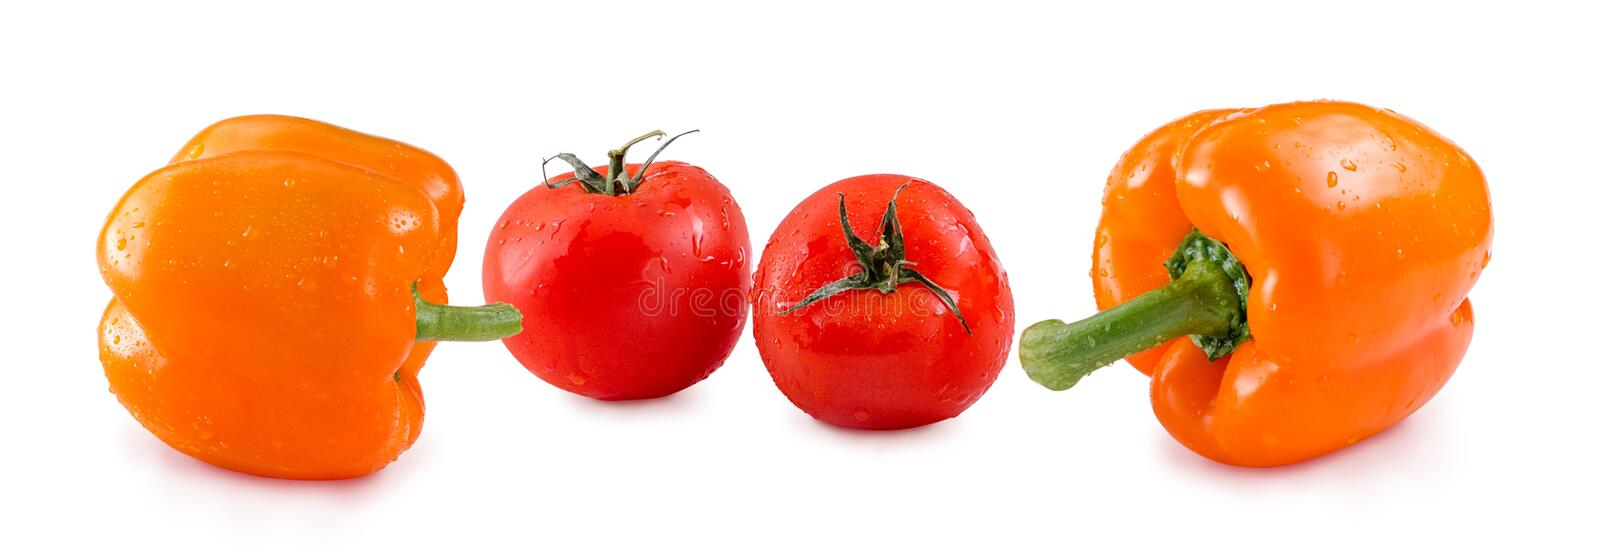 Tomatoes and Yellow Bell Pepper with drops isolated on white background. Panorama website header banner stock photo